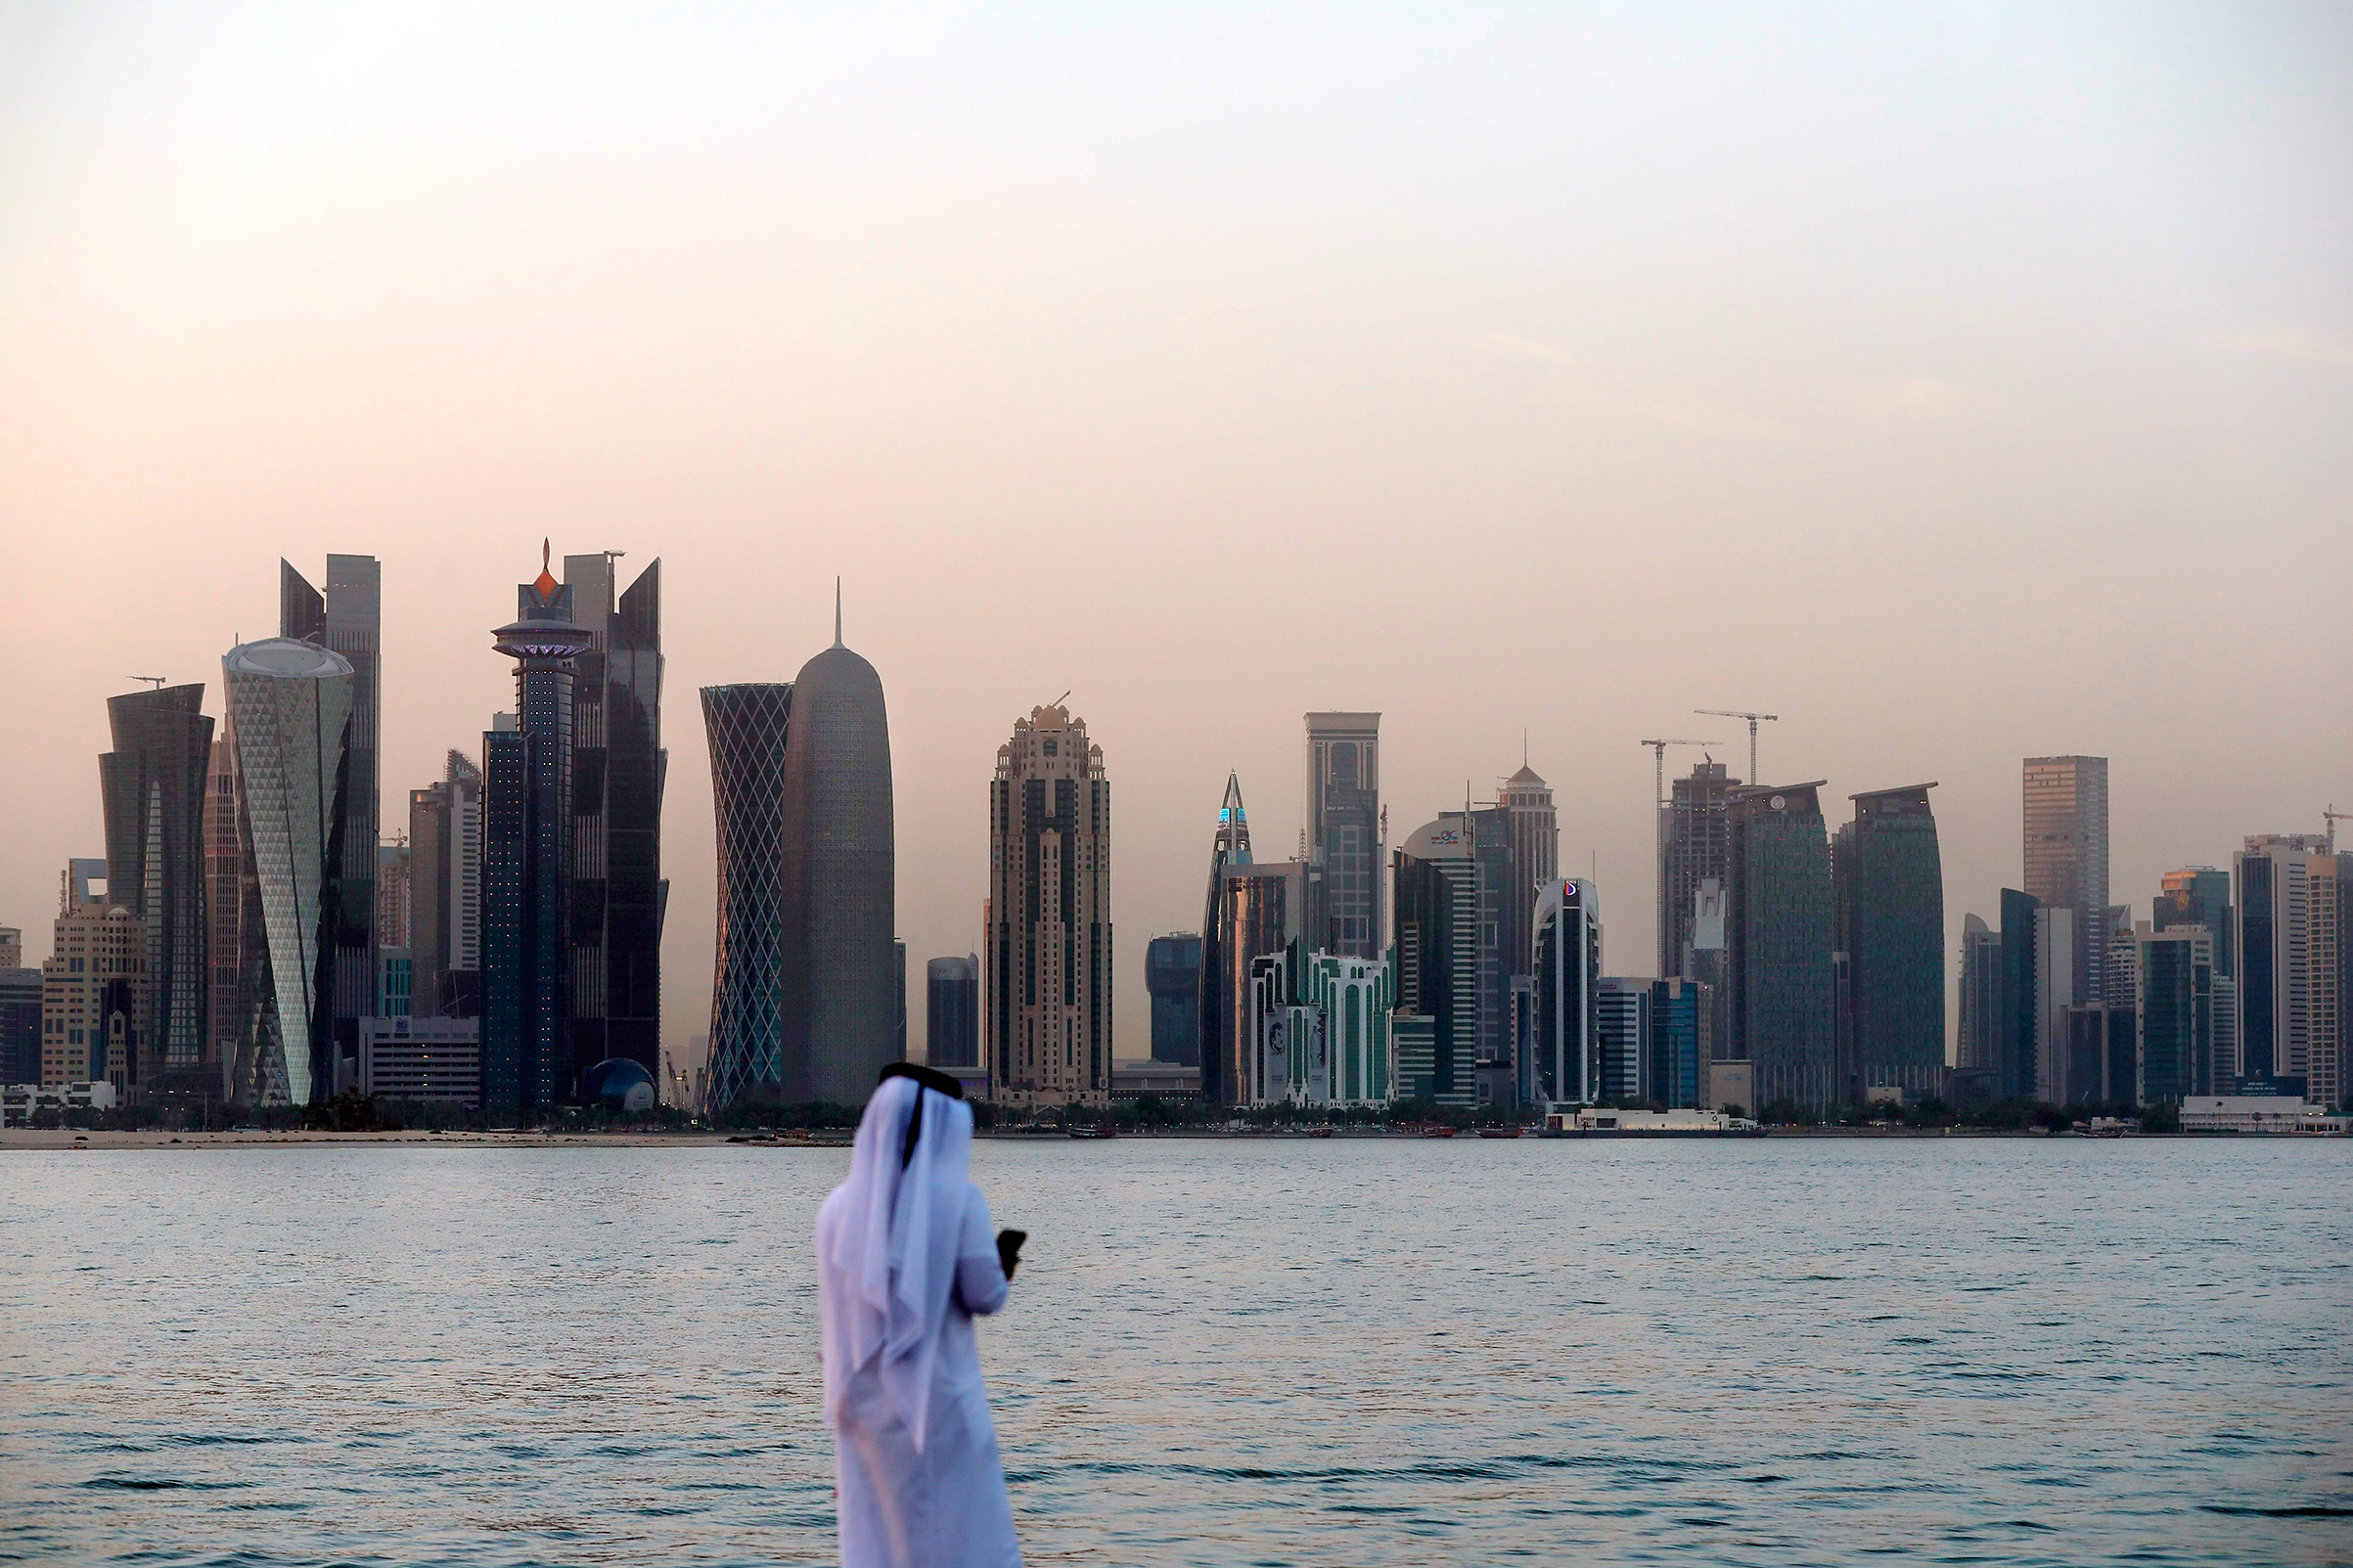 Life in Doha is relatively unchanged after weeks under a blockade